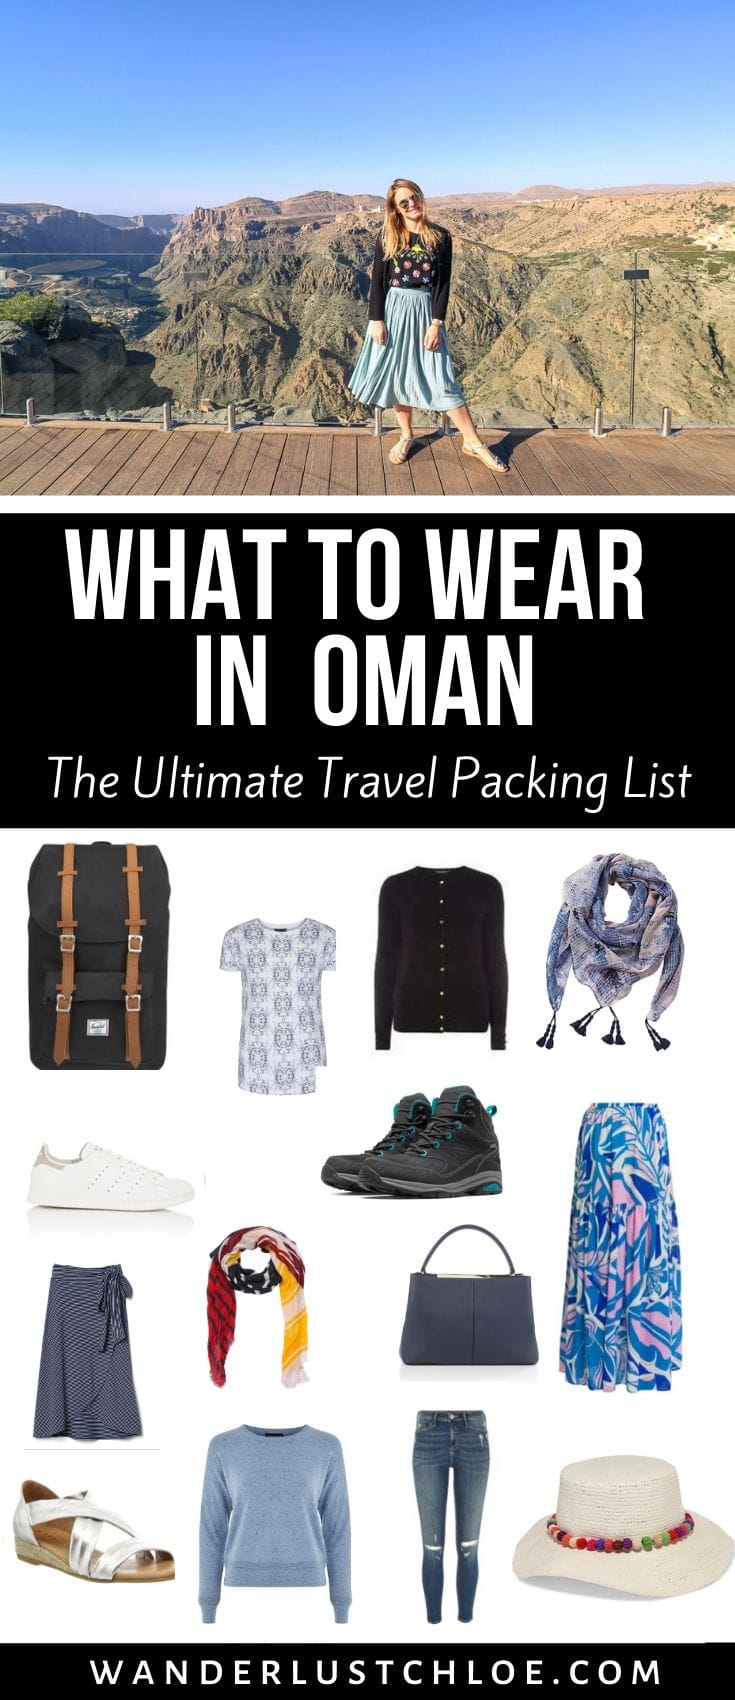 What To Wear In Oman